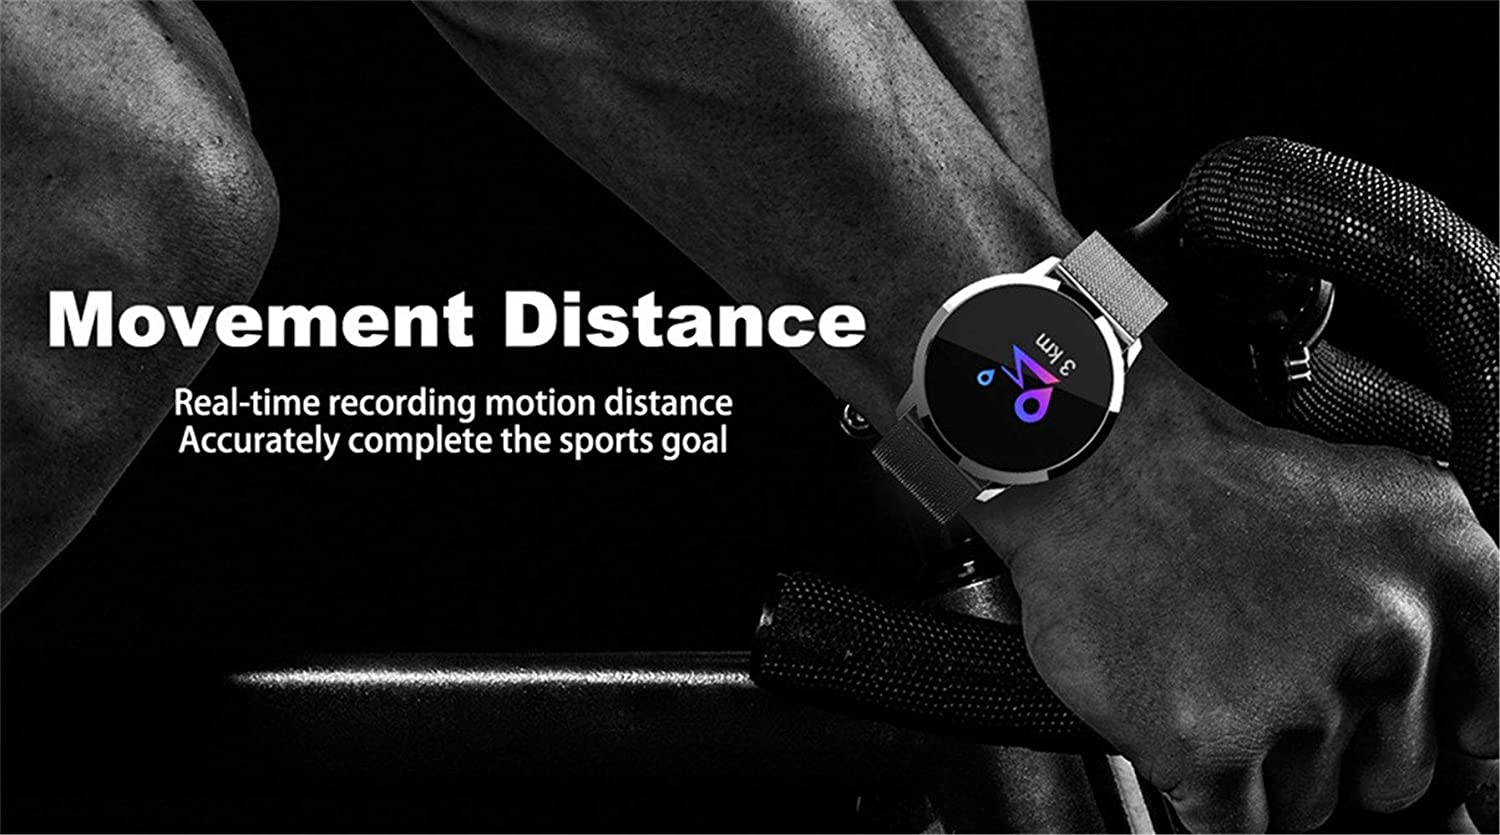 Amazon.com: WoCoo Smart Watch Q8 OLED Color Screen Smartwatch Women Fashion Fitness Tracker Heart Rate Monitor for Android iOS: Kitchen & Dining